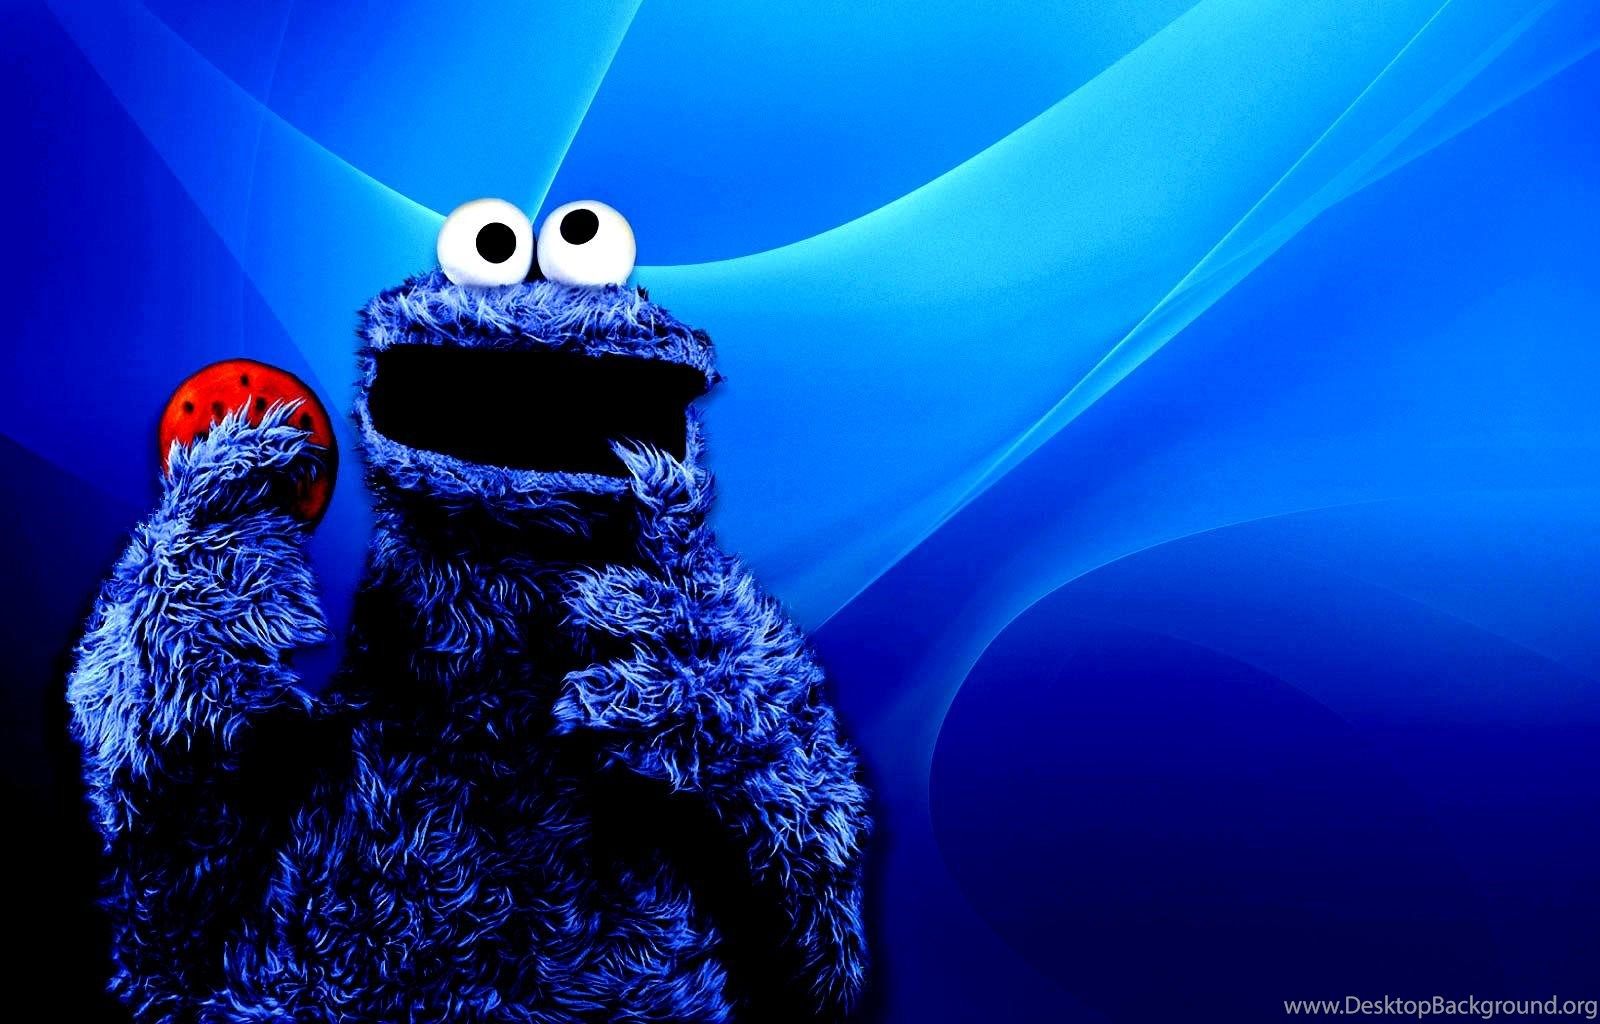 Cookie monster wallpapers simple luxury - Cookie monster wallpaper ...